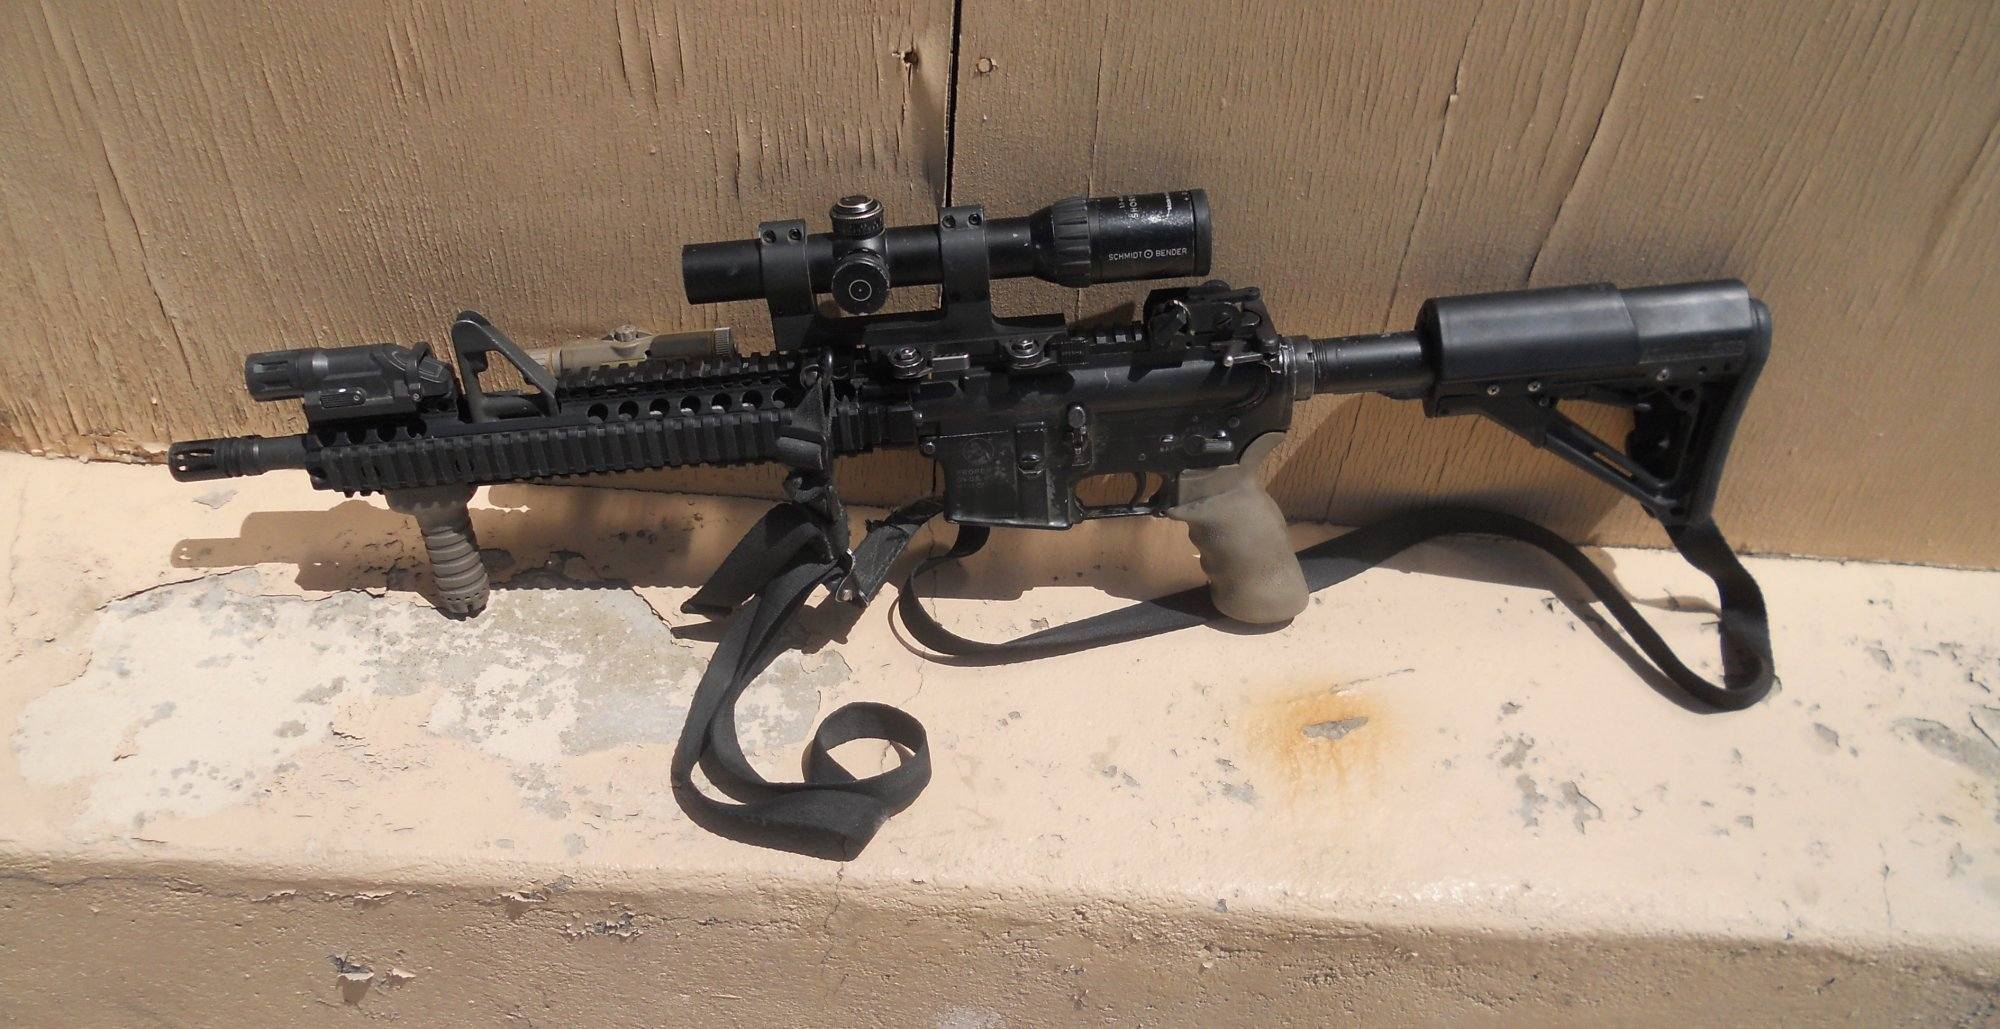 Jeff_Gurwitch_AR-15_M4A1_Carbine_Tactical_Accessories_DefenseReview.com_DR_Pic_A.jpg